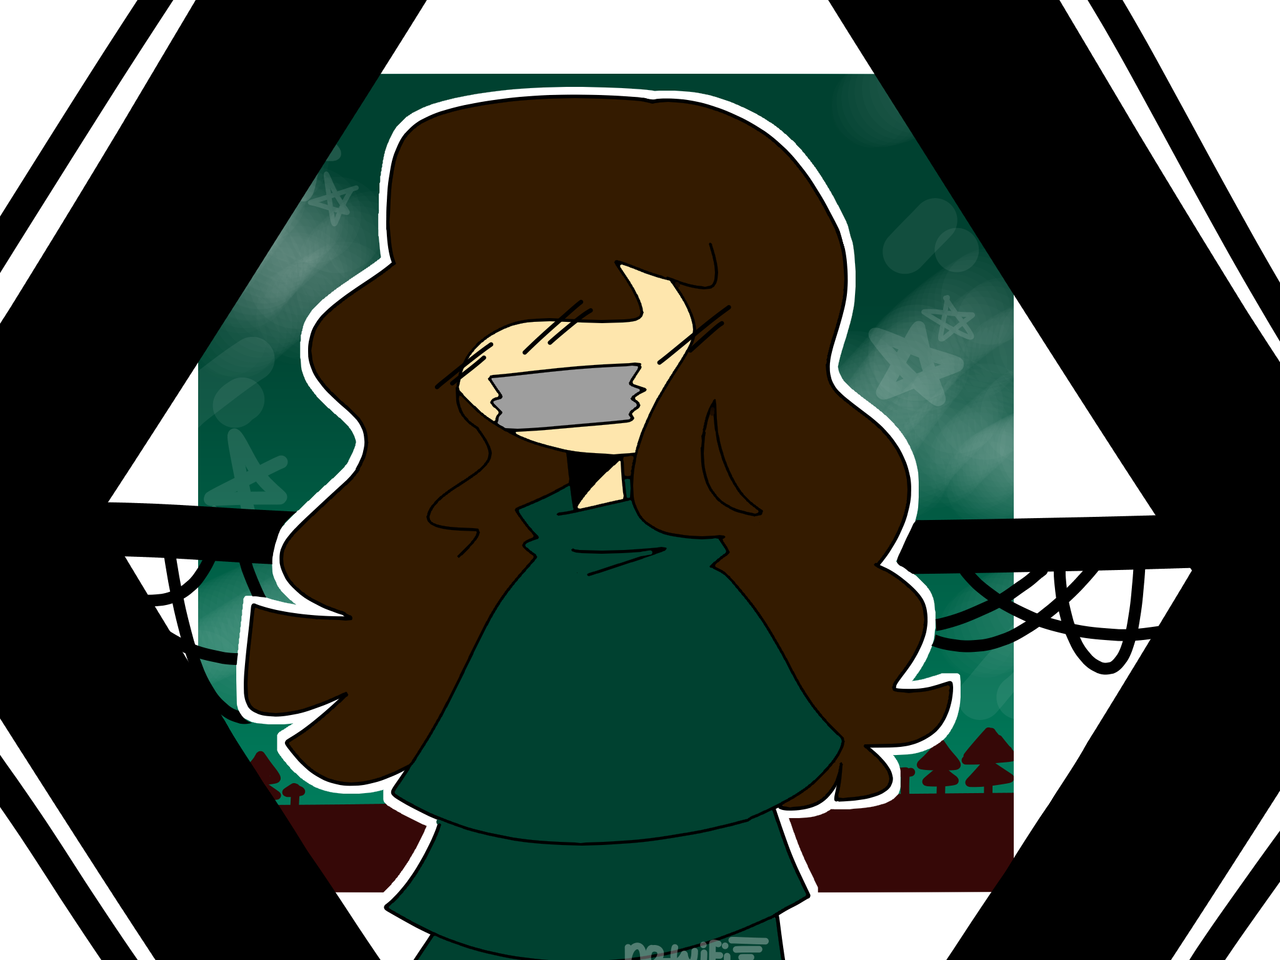 Contest entry thing for Certified_clod uwu Illust of RiiRen medibangpaint